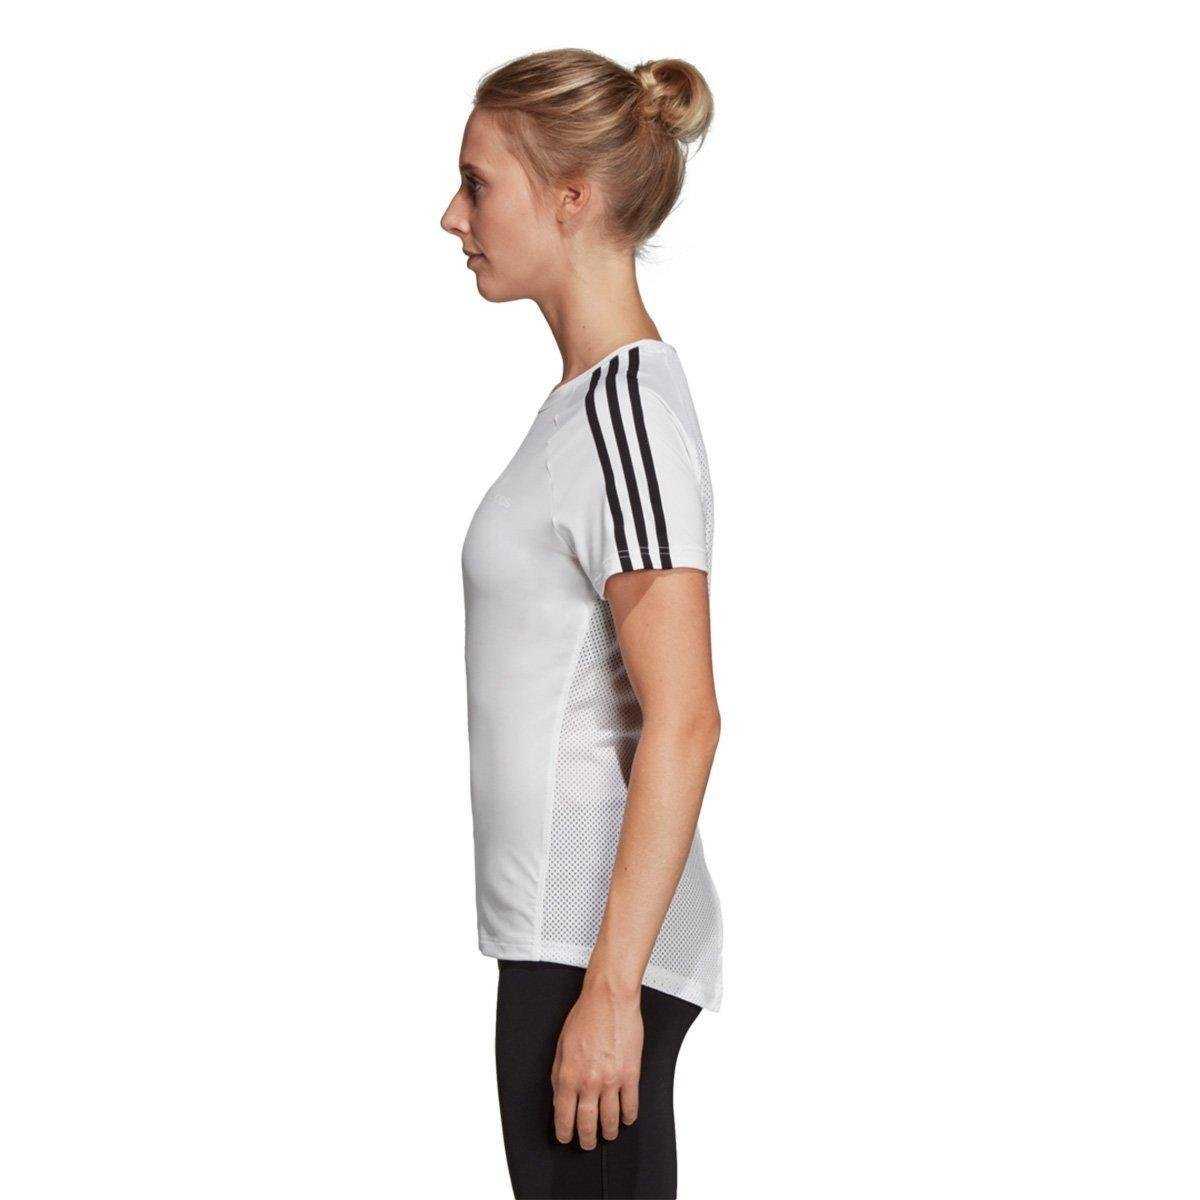 a3283e2b9f Camiseta Adidas Design 2 Move 3 Stripes Feminina - Branco e Preto ...